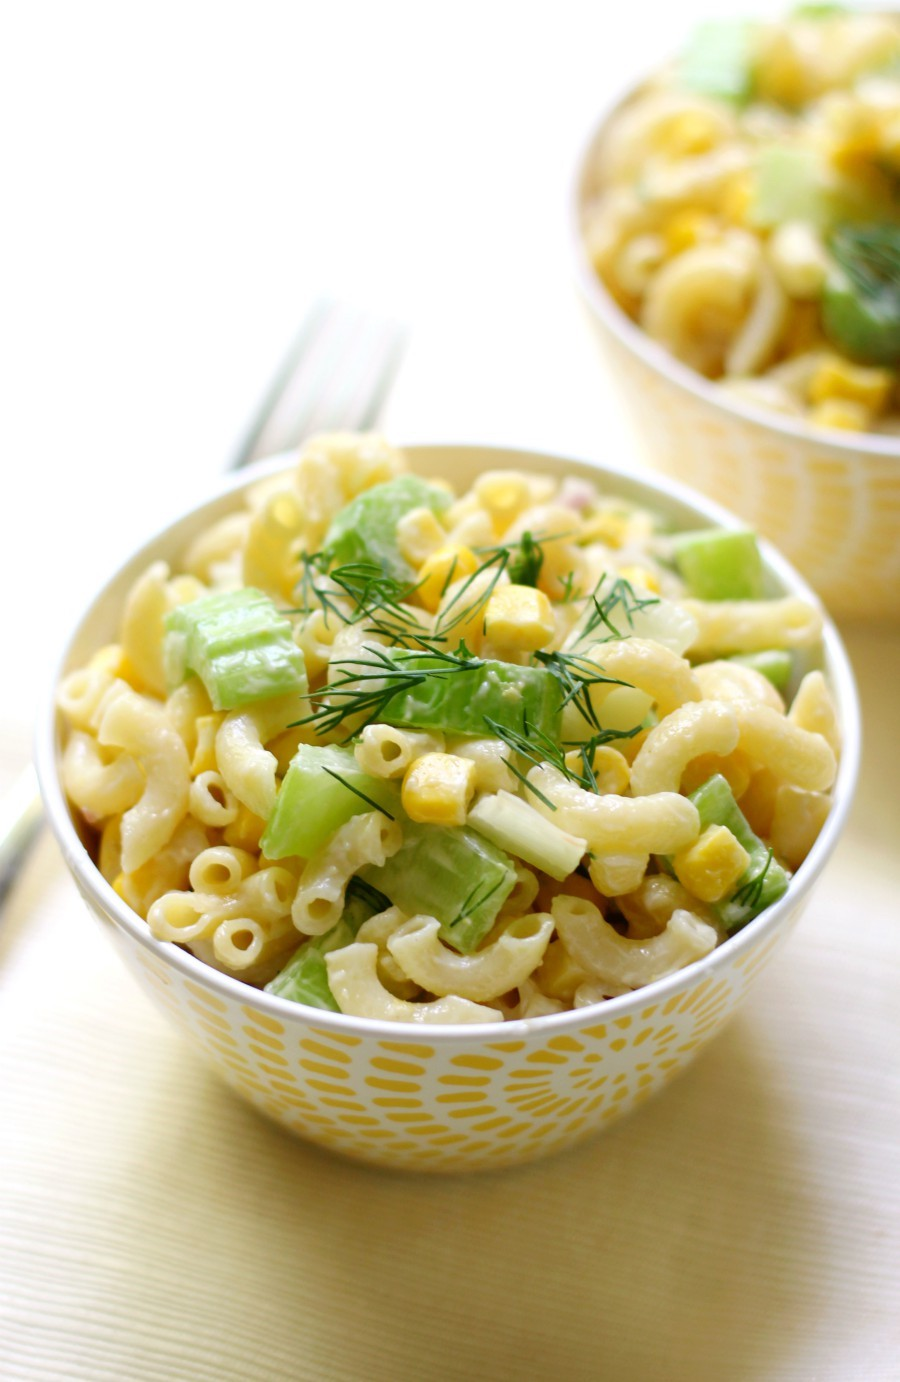 Simple Summer Corn Macaroni Salad (Gluten-Free, Vegan, Allergy-Free) | Strength and Sunshine @RebeccaGF666 An easy last minute side dish recipe for all your cookouts, bbqs, and potlucks! This Simple Summer Corn Macaroni Salad is gluten-free, vegan, top 8 allergy-free, and can be made in just 10 minutes! Seven ingredients are all you need for this family-friendly pasta salad!